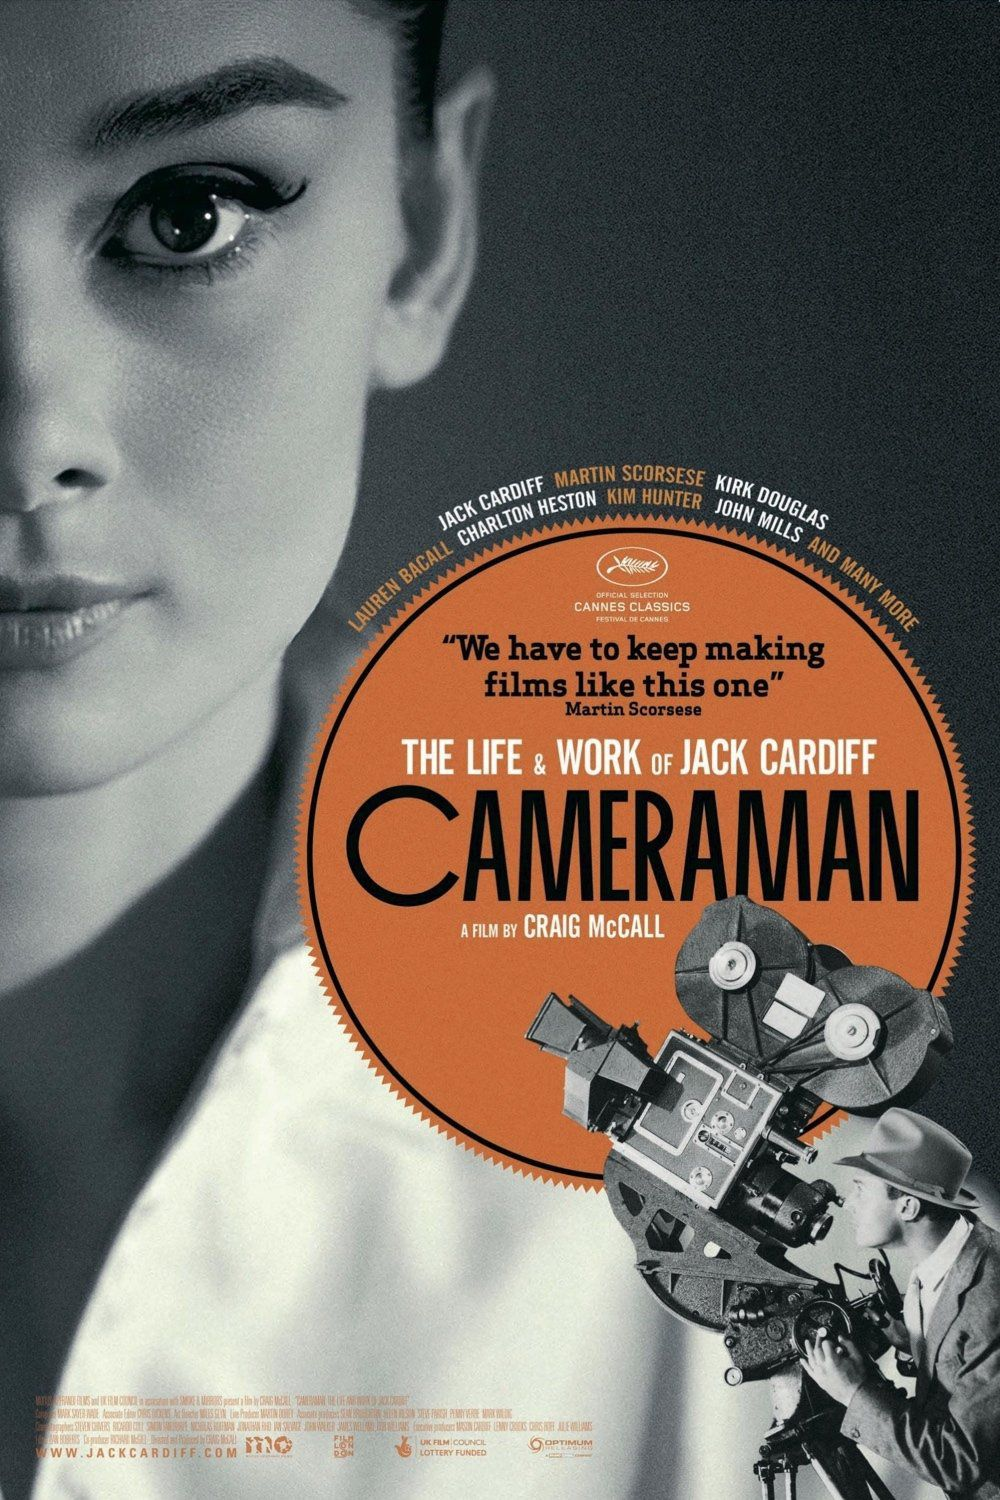 Cameraman: The Life and Work of Jack Cardiff - Documentaire (2010)